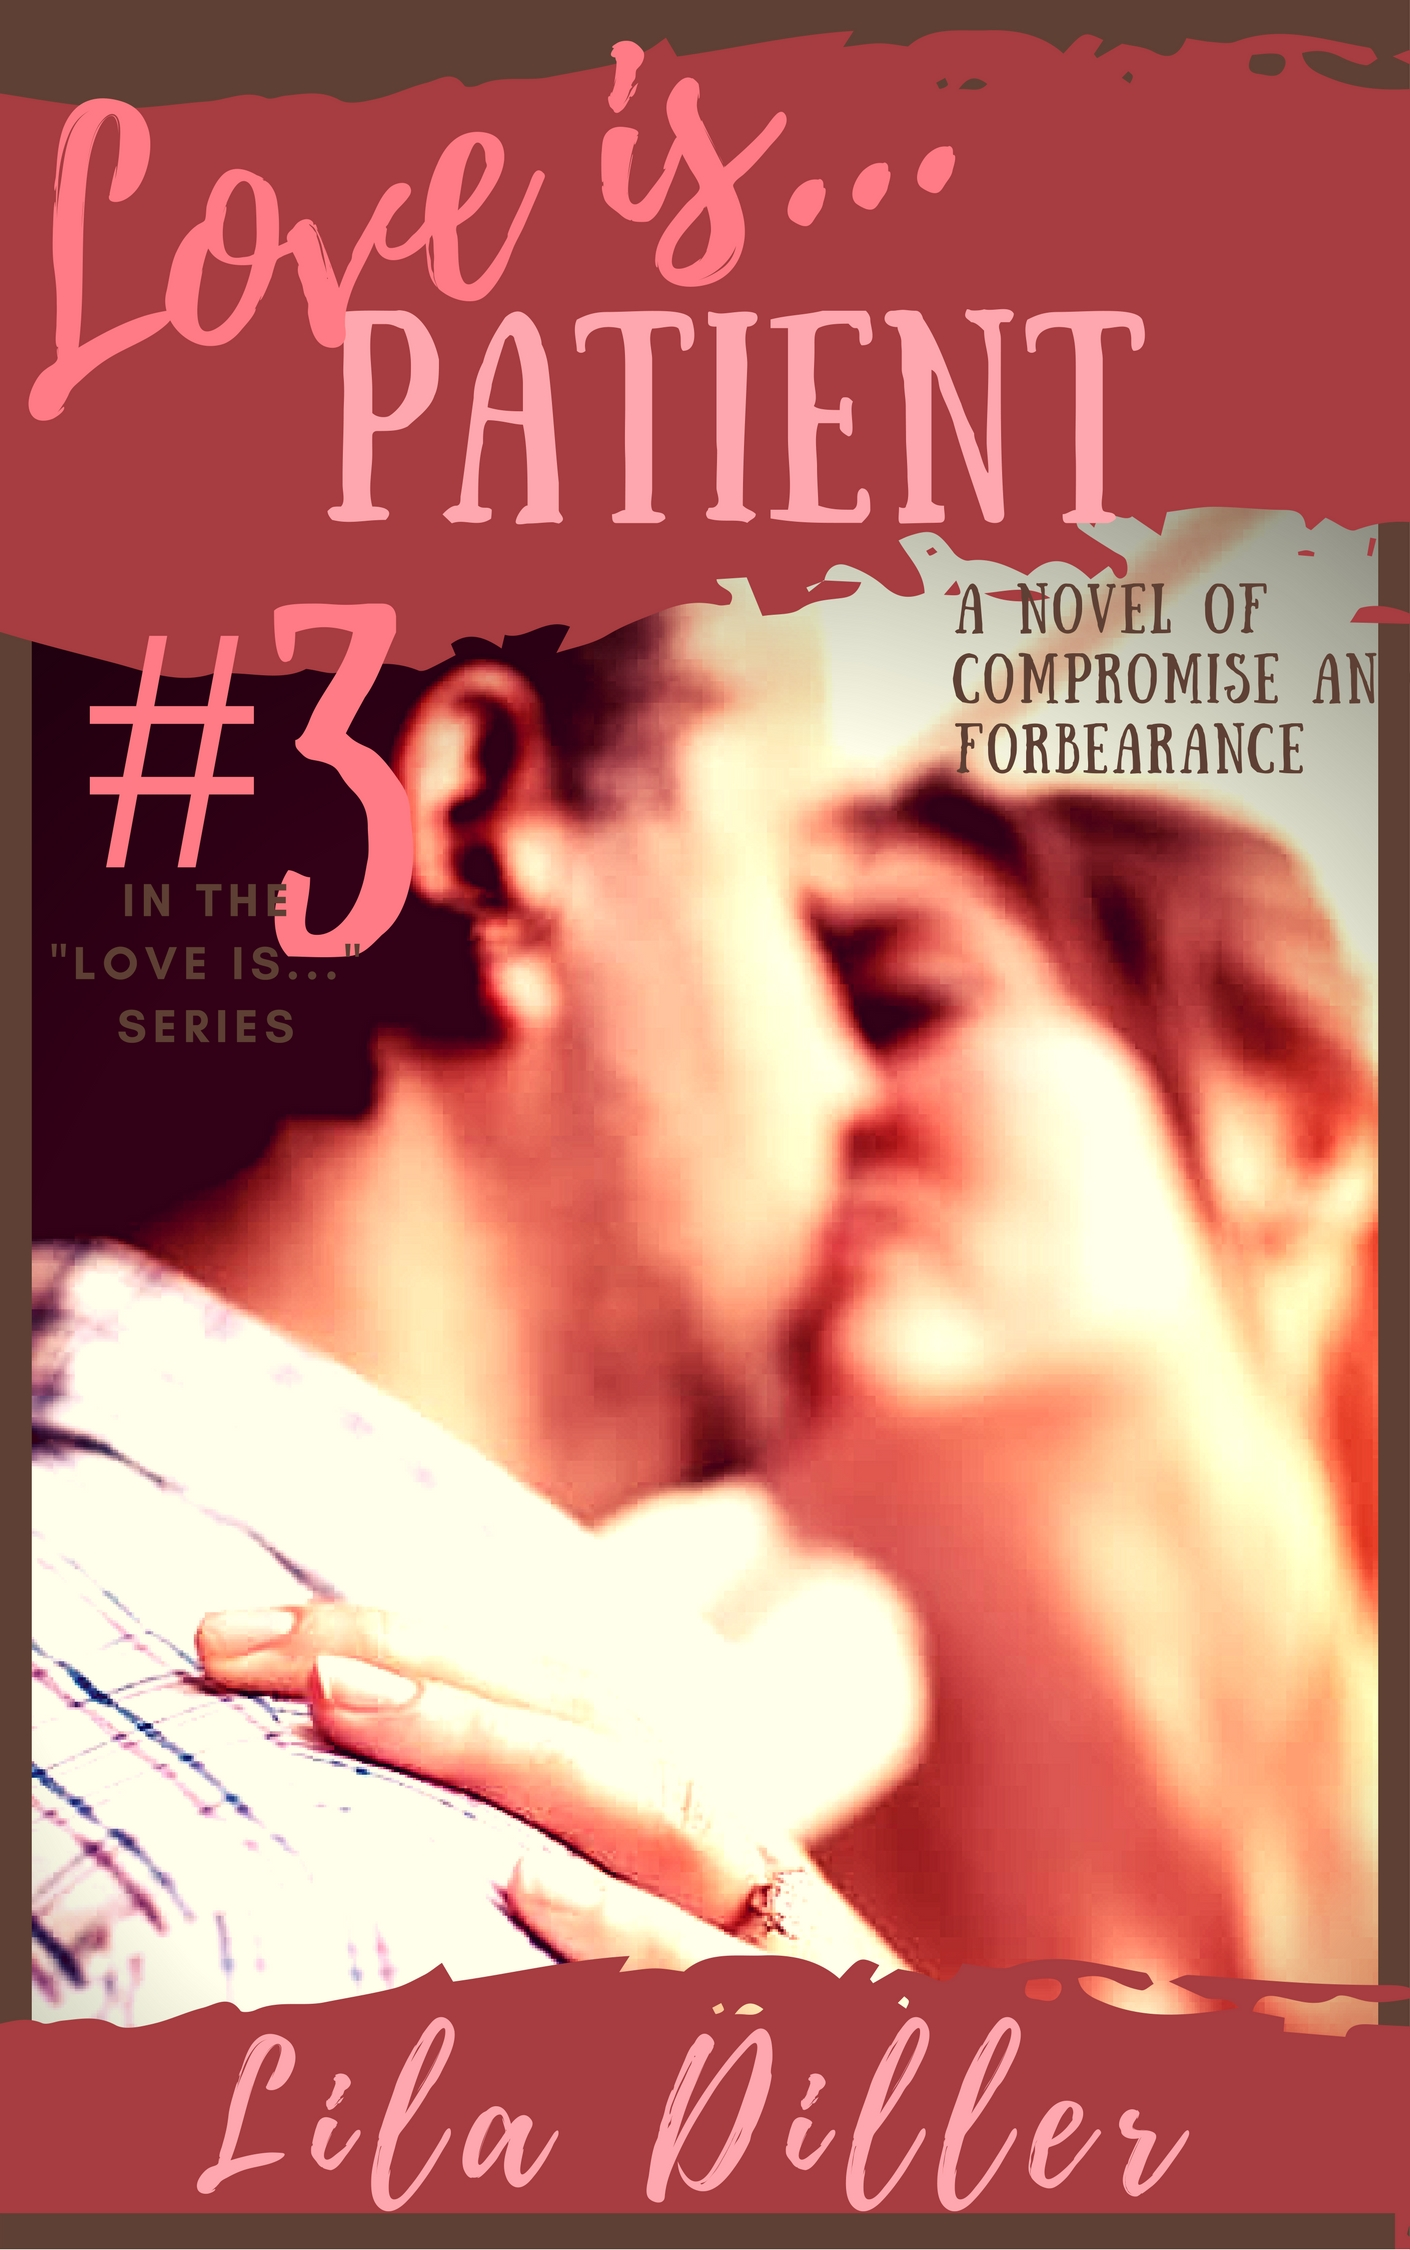 Love is Patient6.jpg